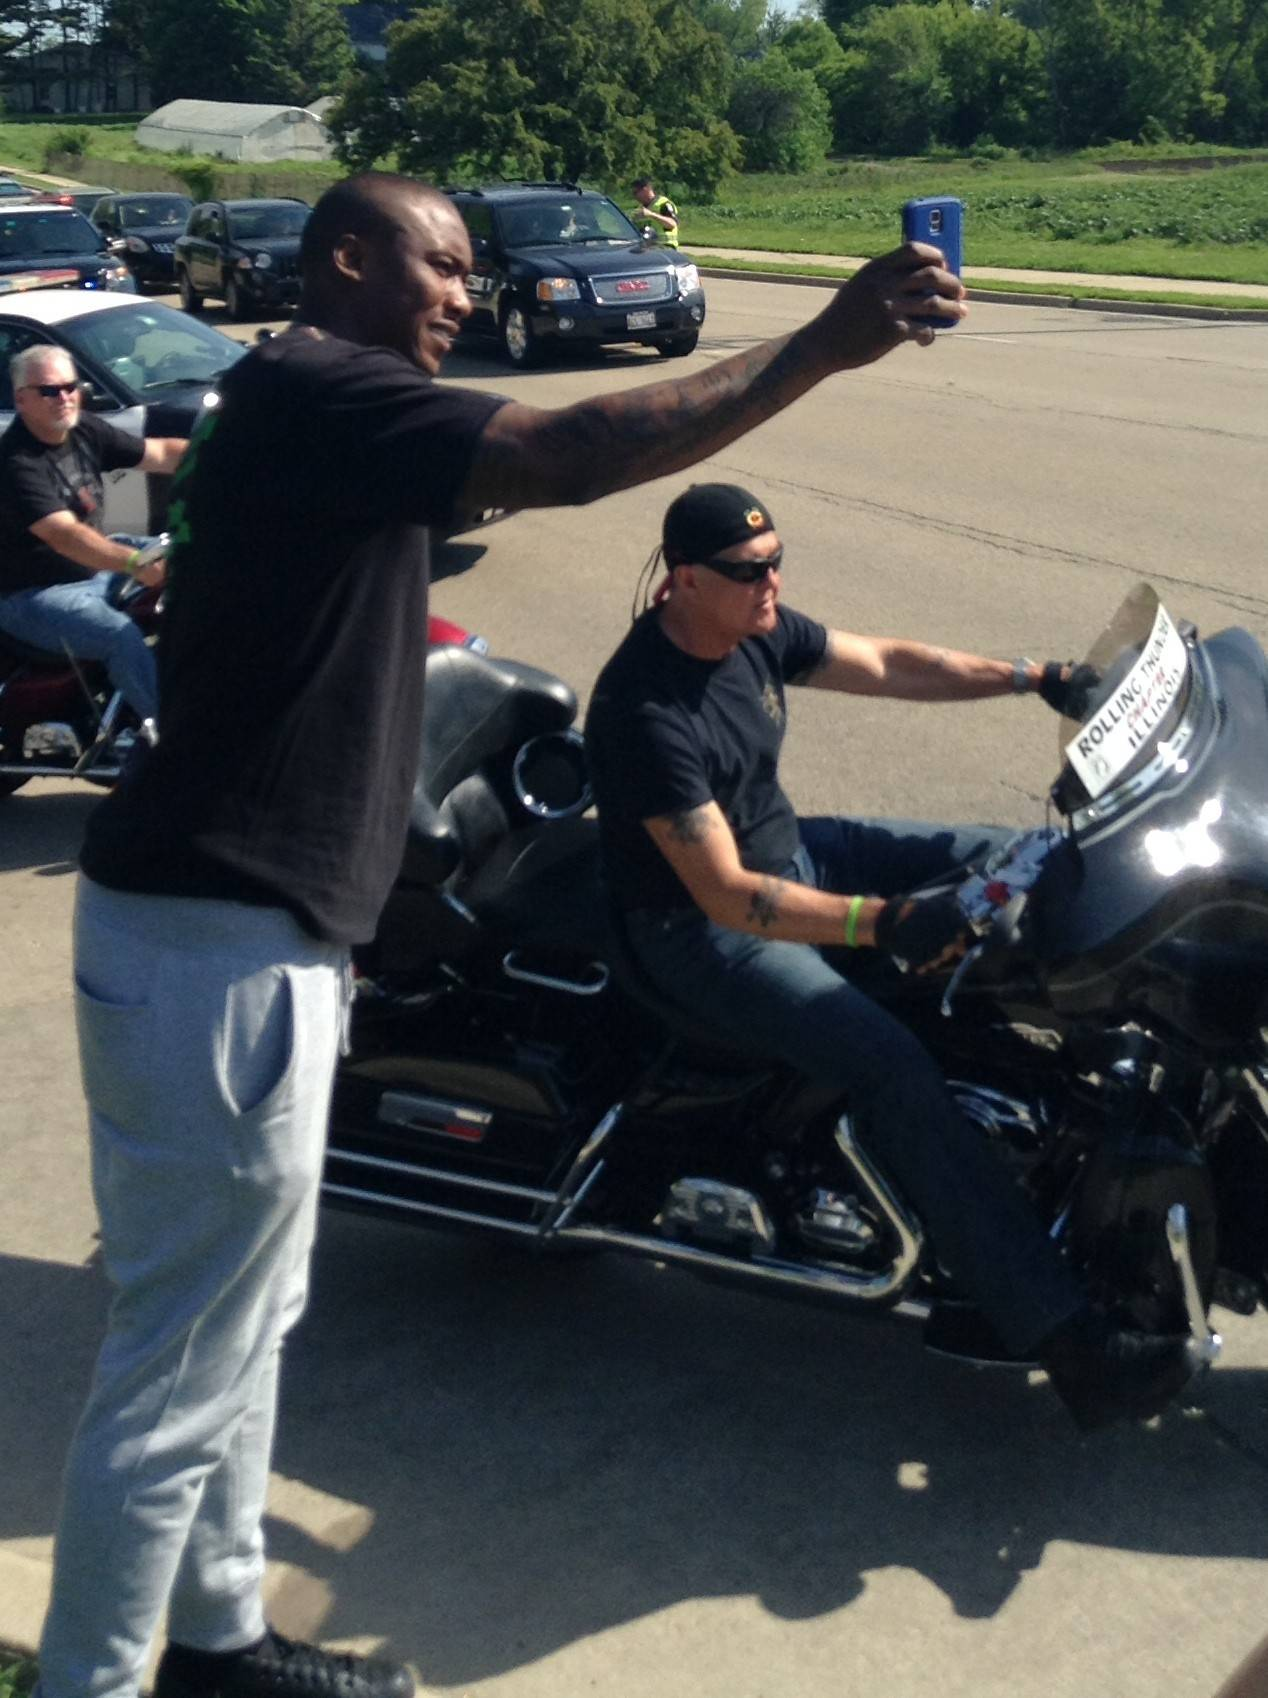 Bears wide receiver Brandon Marshall cheers on motorcyclists at the beginning of Saturday's ride from Naperville to Ottawa. He tweeted photos throughout the event.